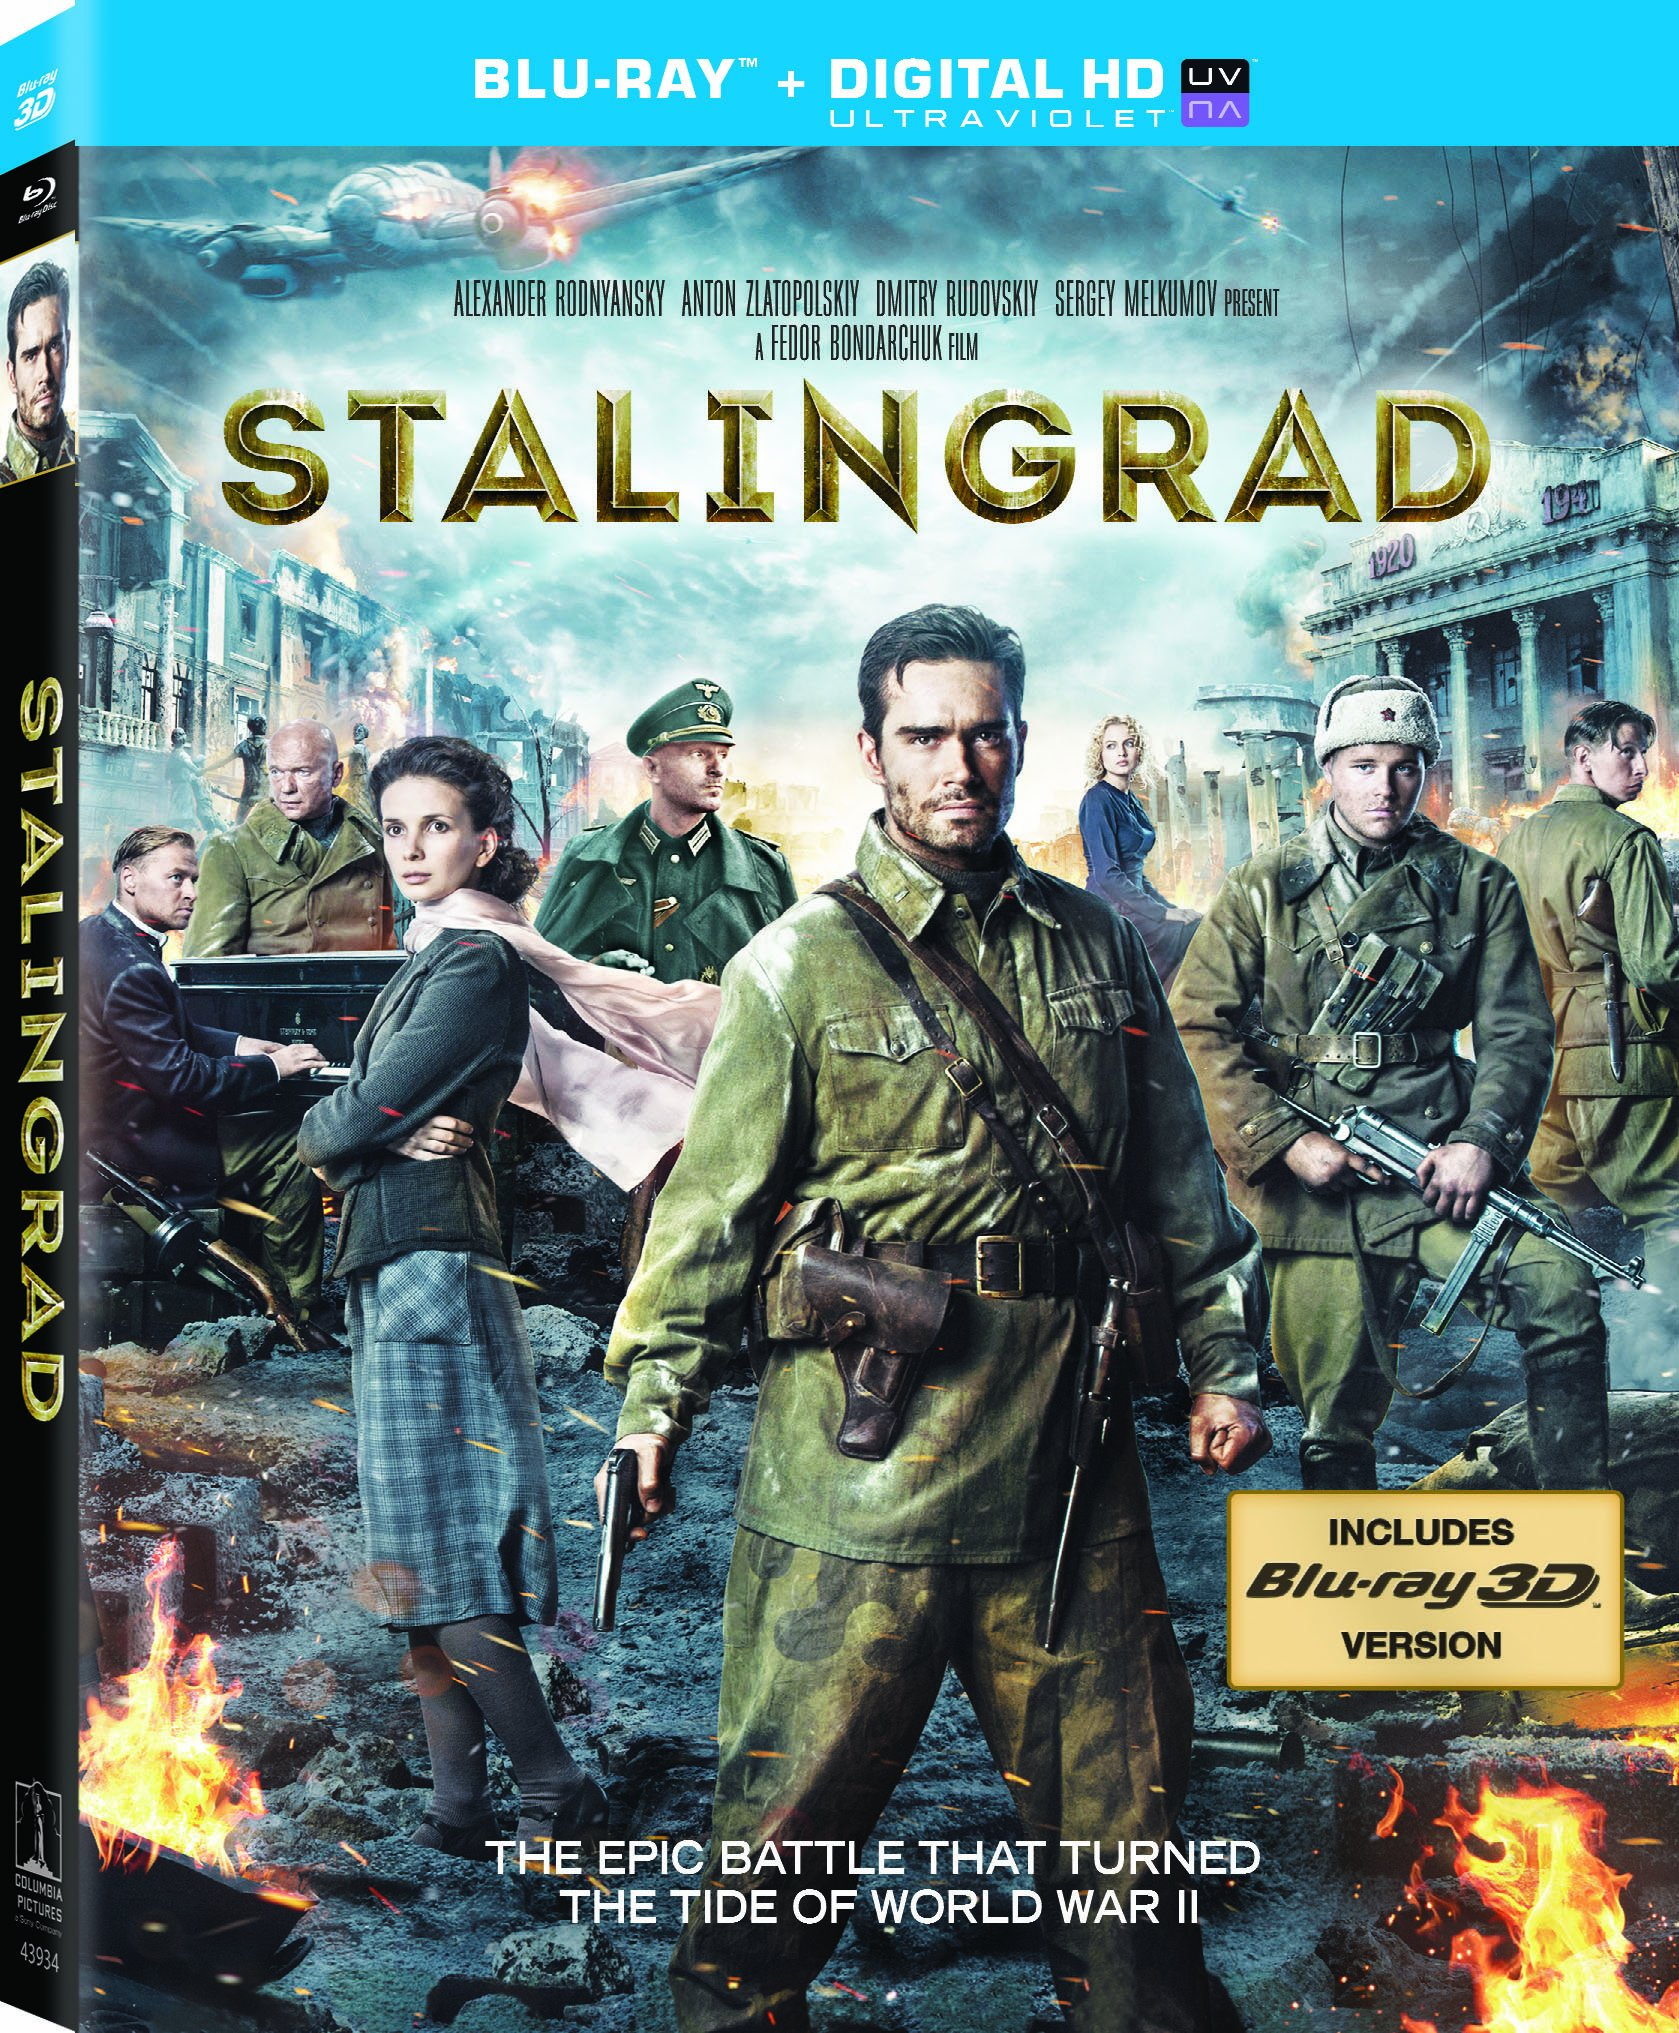 Stalingrad was released on Sony Blu-ray on May 13, 2014